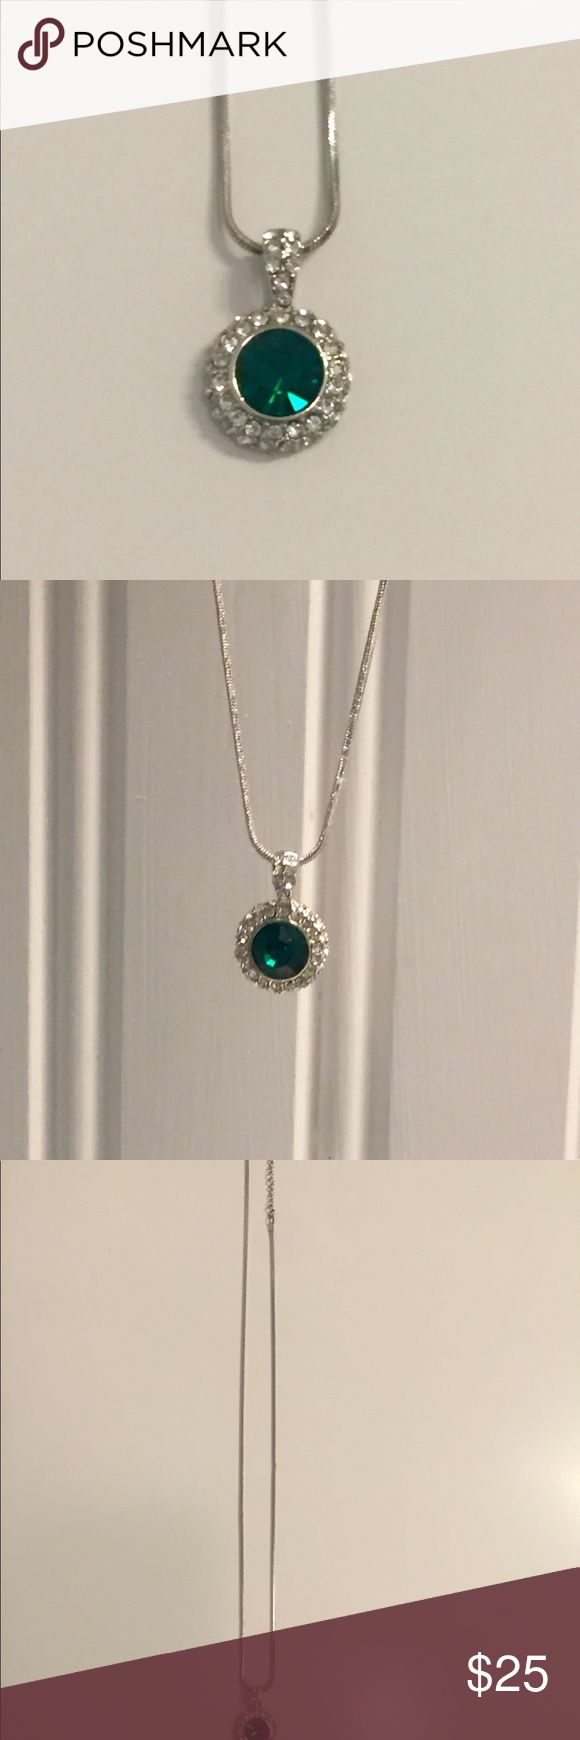 Stunning Emerald Necklace Silver, 18 inch necklace featuring a vibrant emerald stone surrounded by rhinestones. please note the emerald and silver are not real, which is reflected in the price, along with the rhinestones (not diamonds). Necklace has never been worn. reasonable offers welcome. Jewelry Necklaces